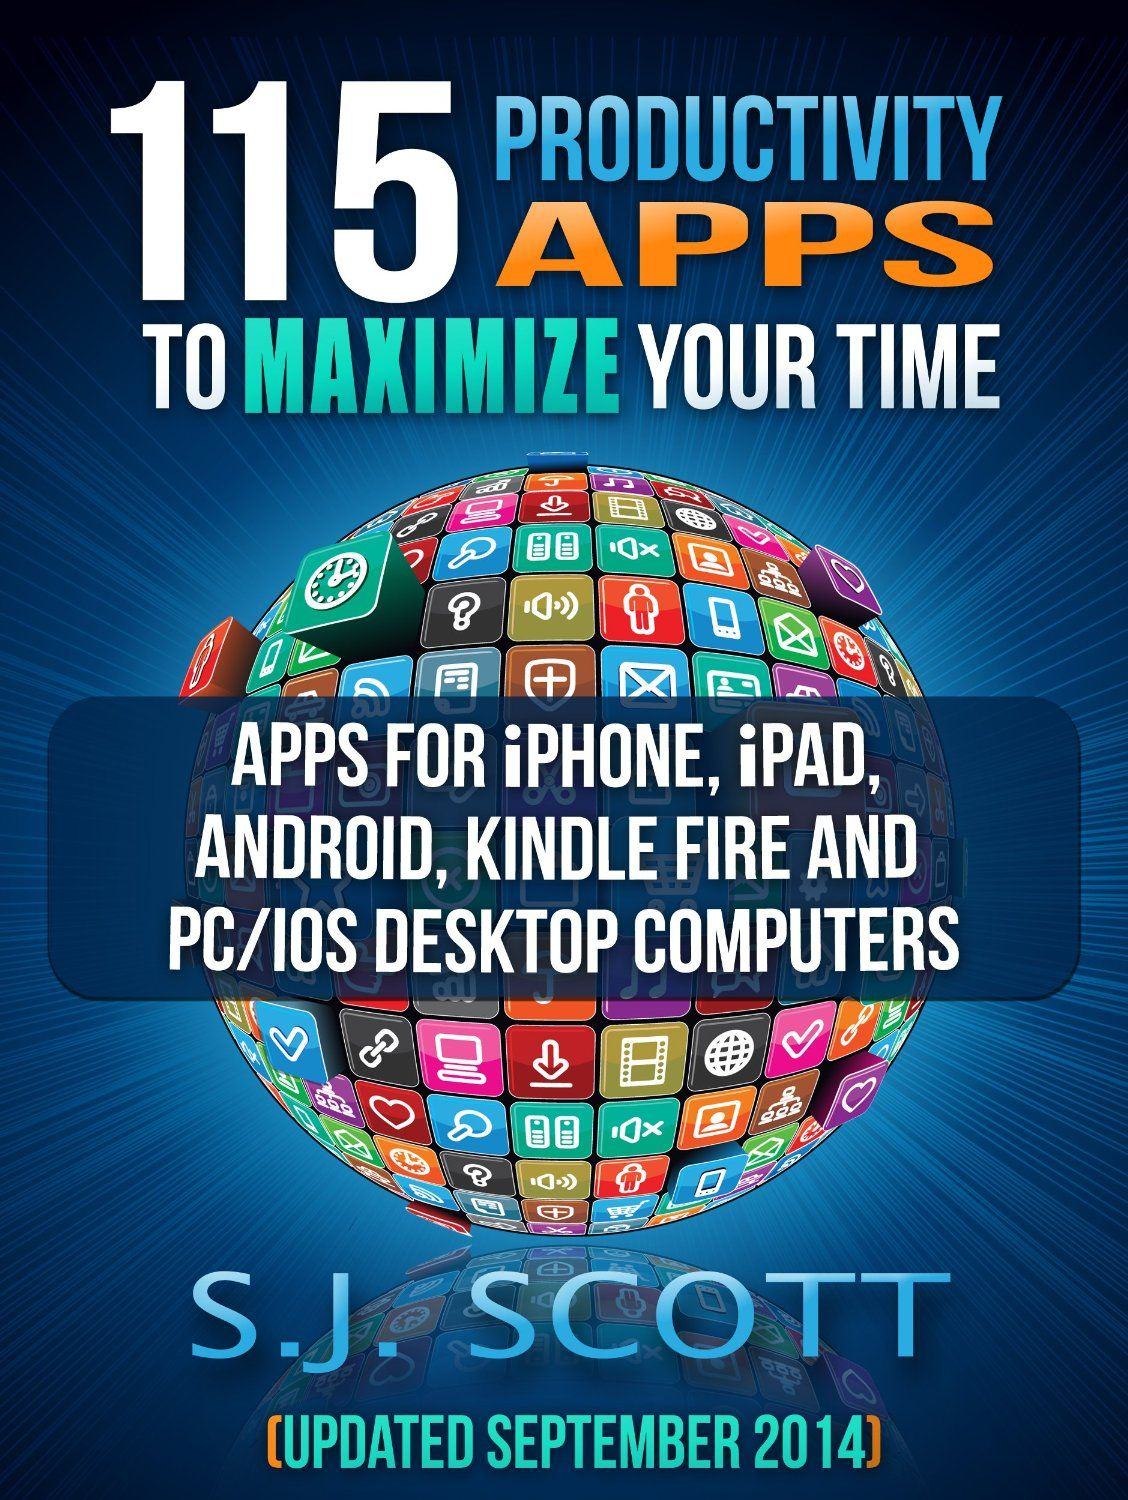 Productivity apps ebook. Get things done with some of the